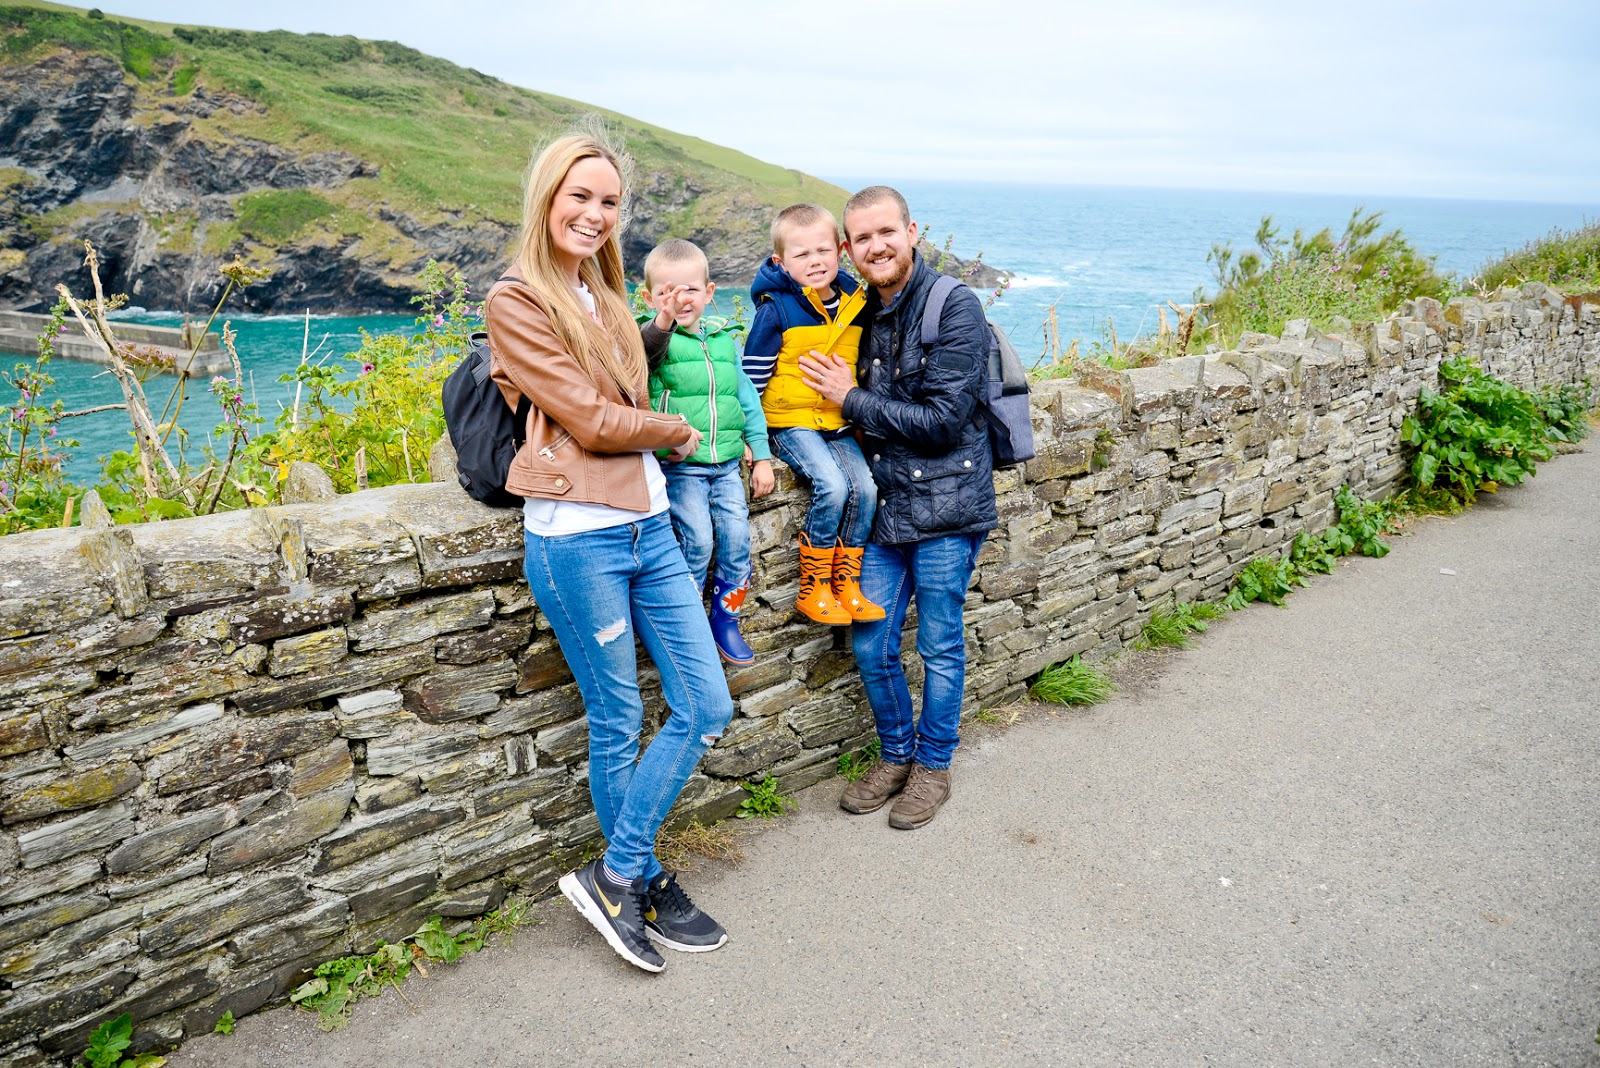 cornwall with kids, things to do in cornwall, uk holidays with kids, uk days out with kids, cornwall things to do,